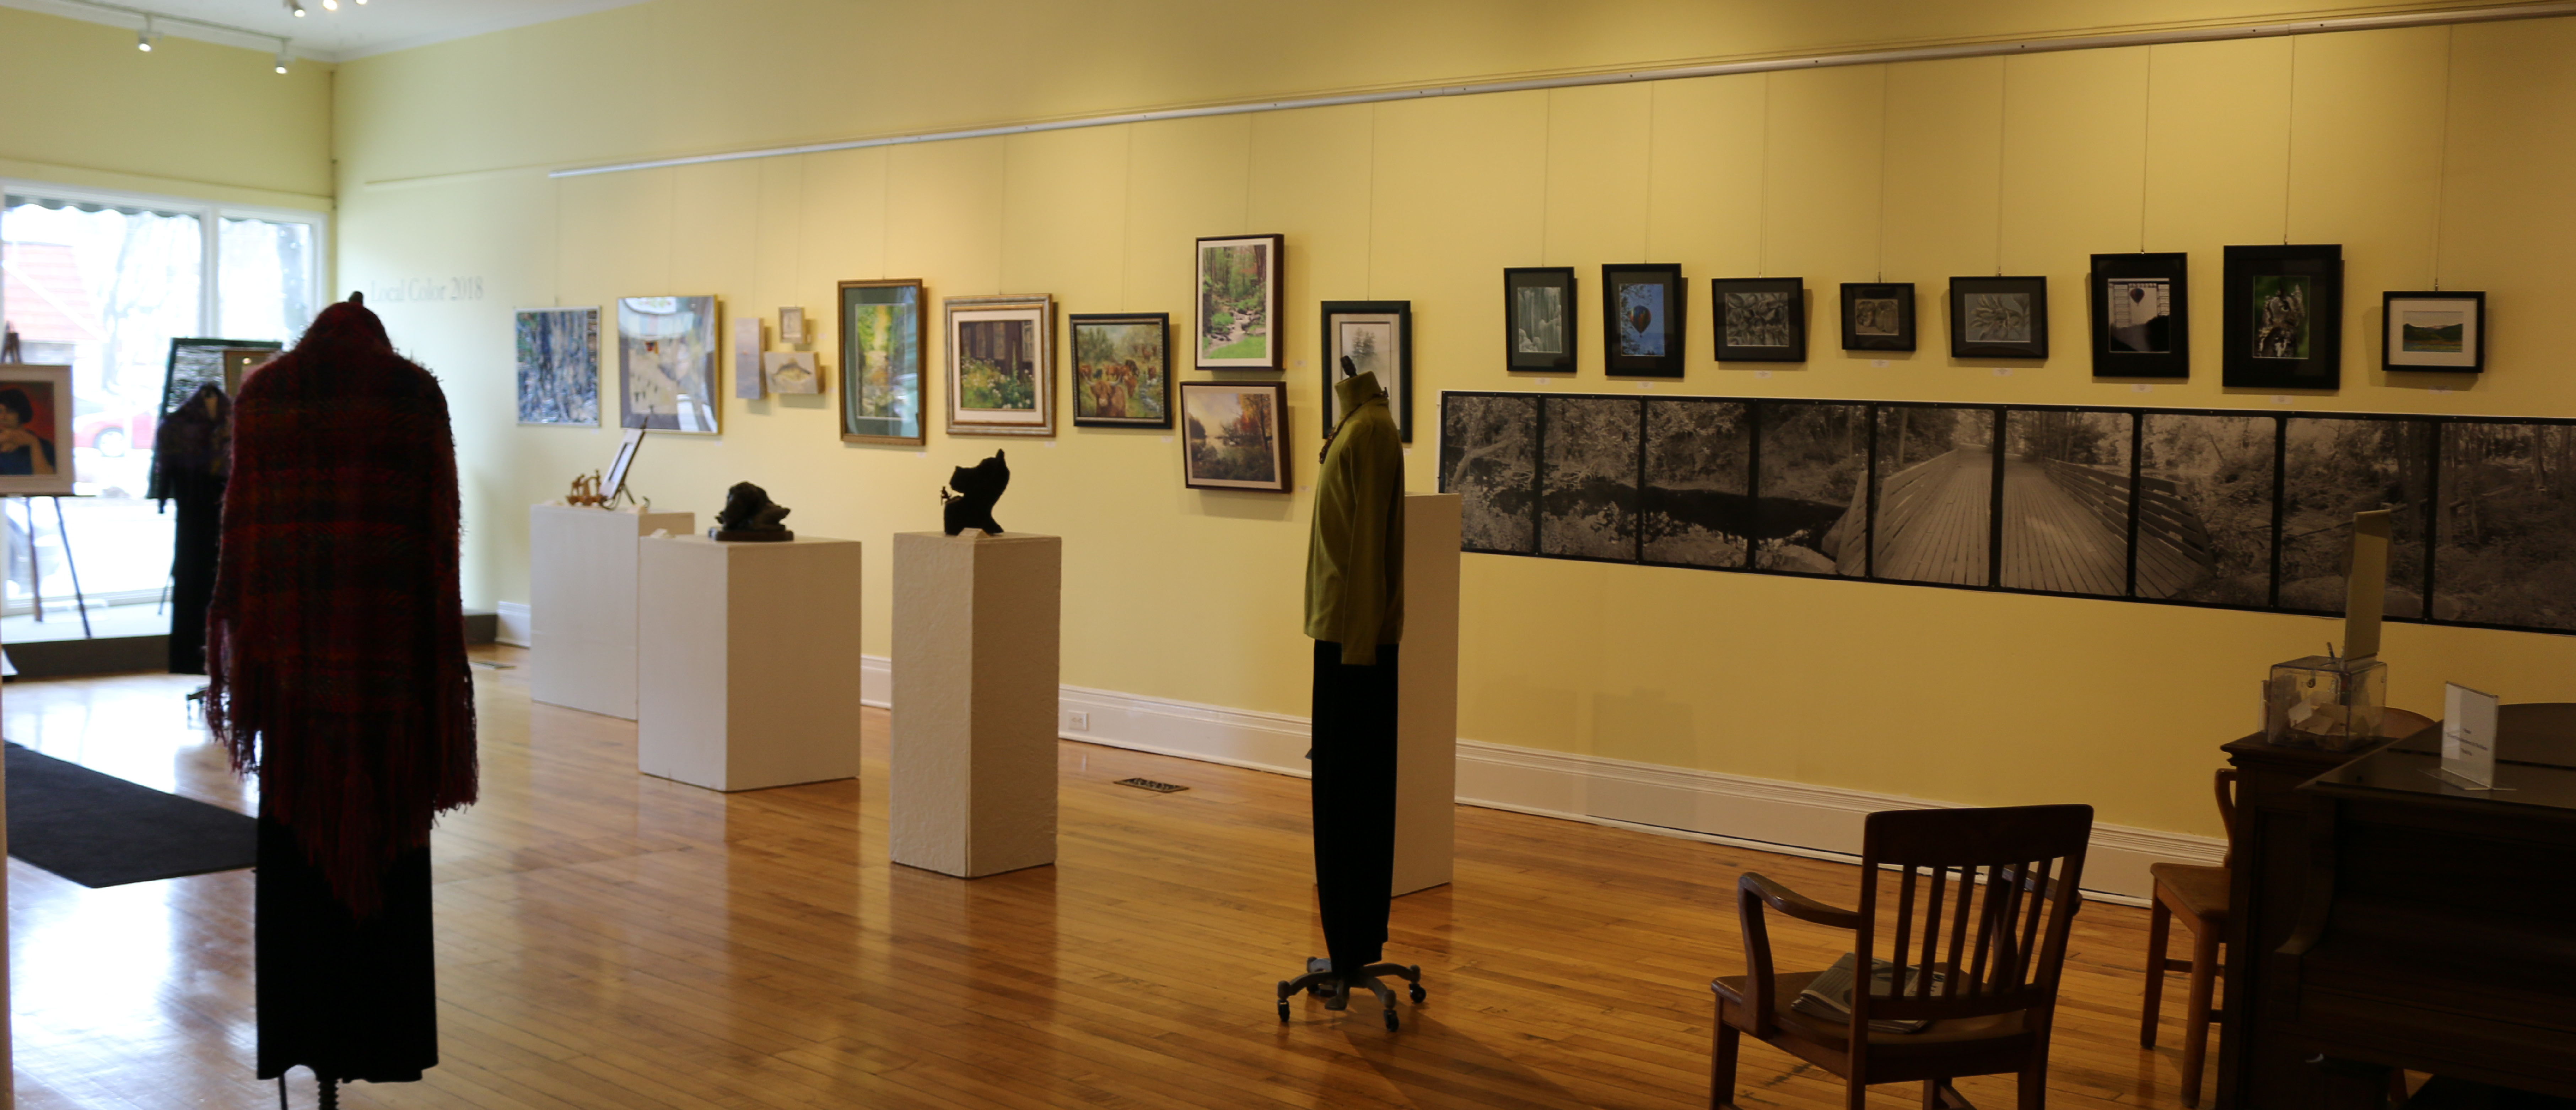 Local Color Members' Show: Explore the 2018 Traverse Theme at the Main Gallery